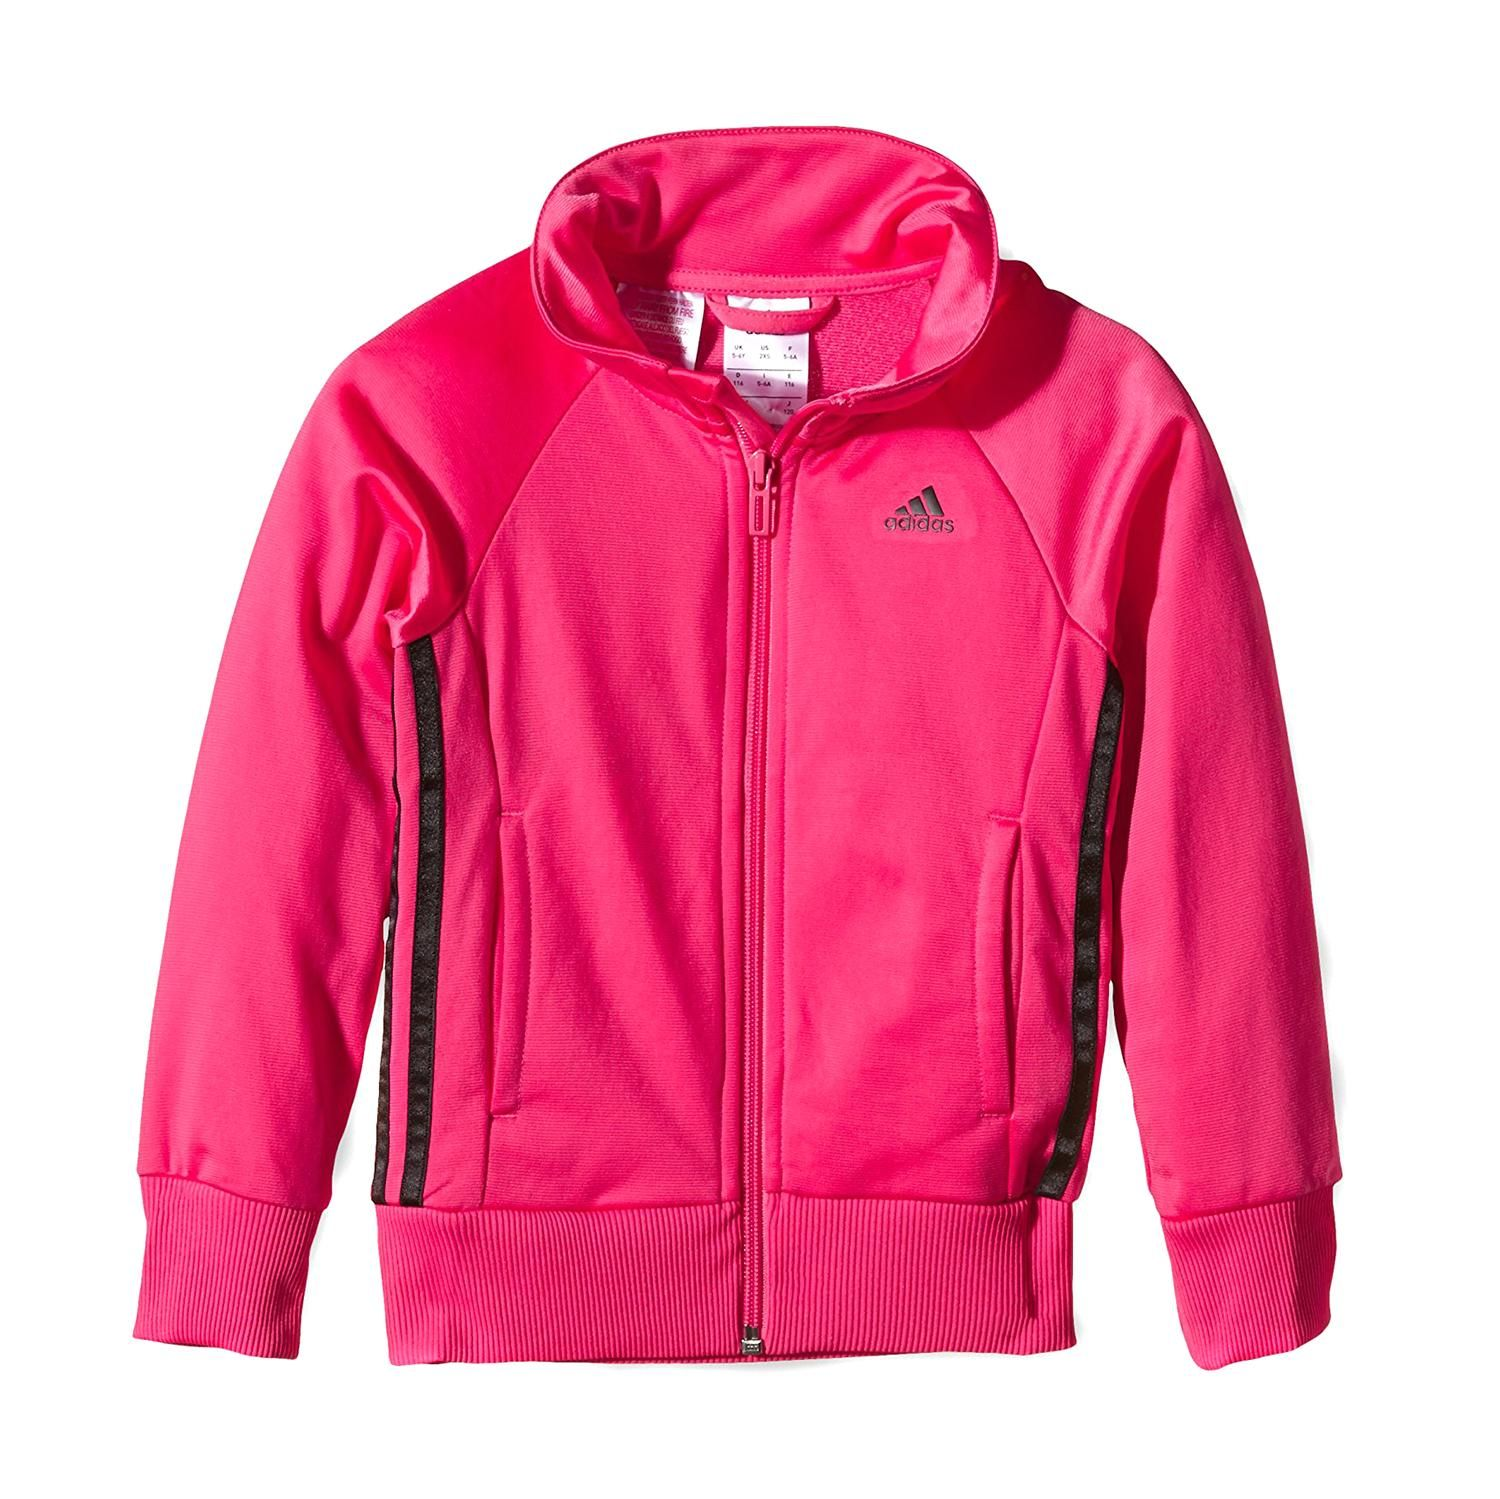 9ac74639b39 Adidas® Casaco Fitness and Training Rosa - Dott — o maior shopping ...